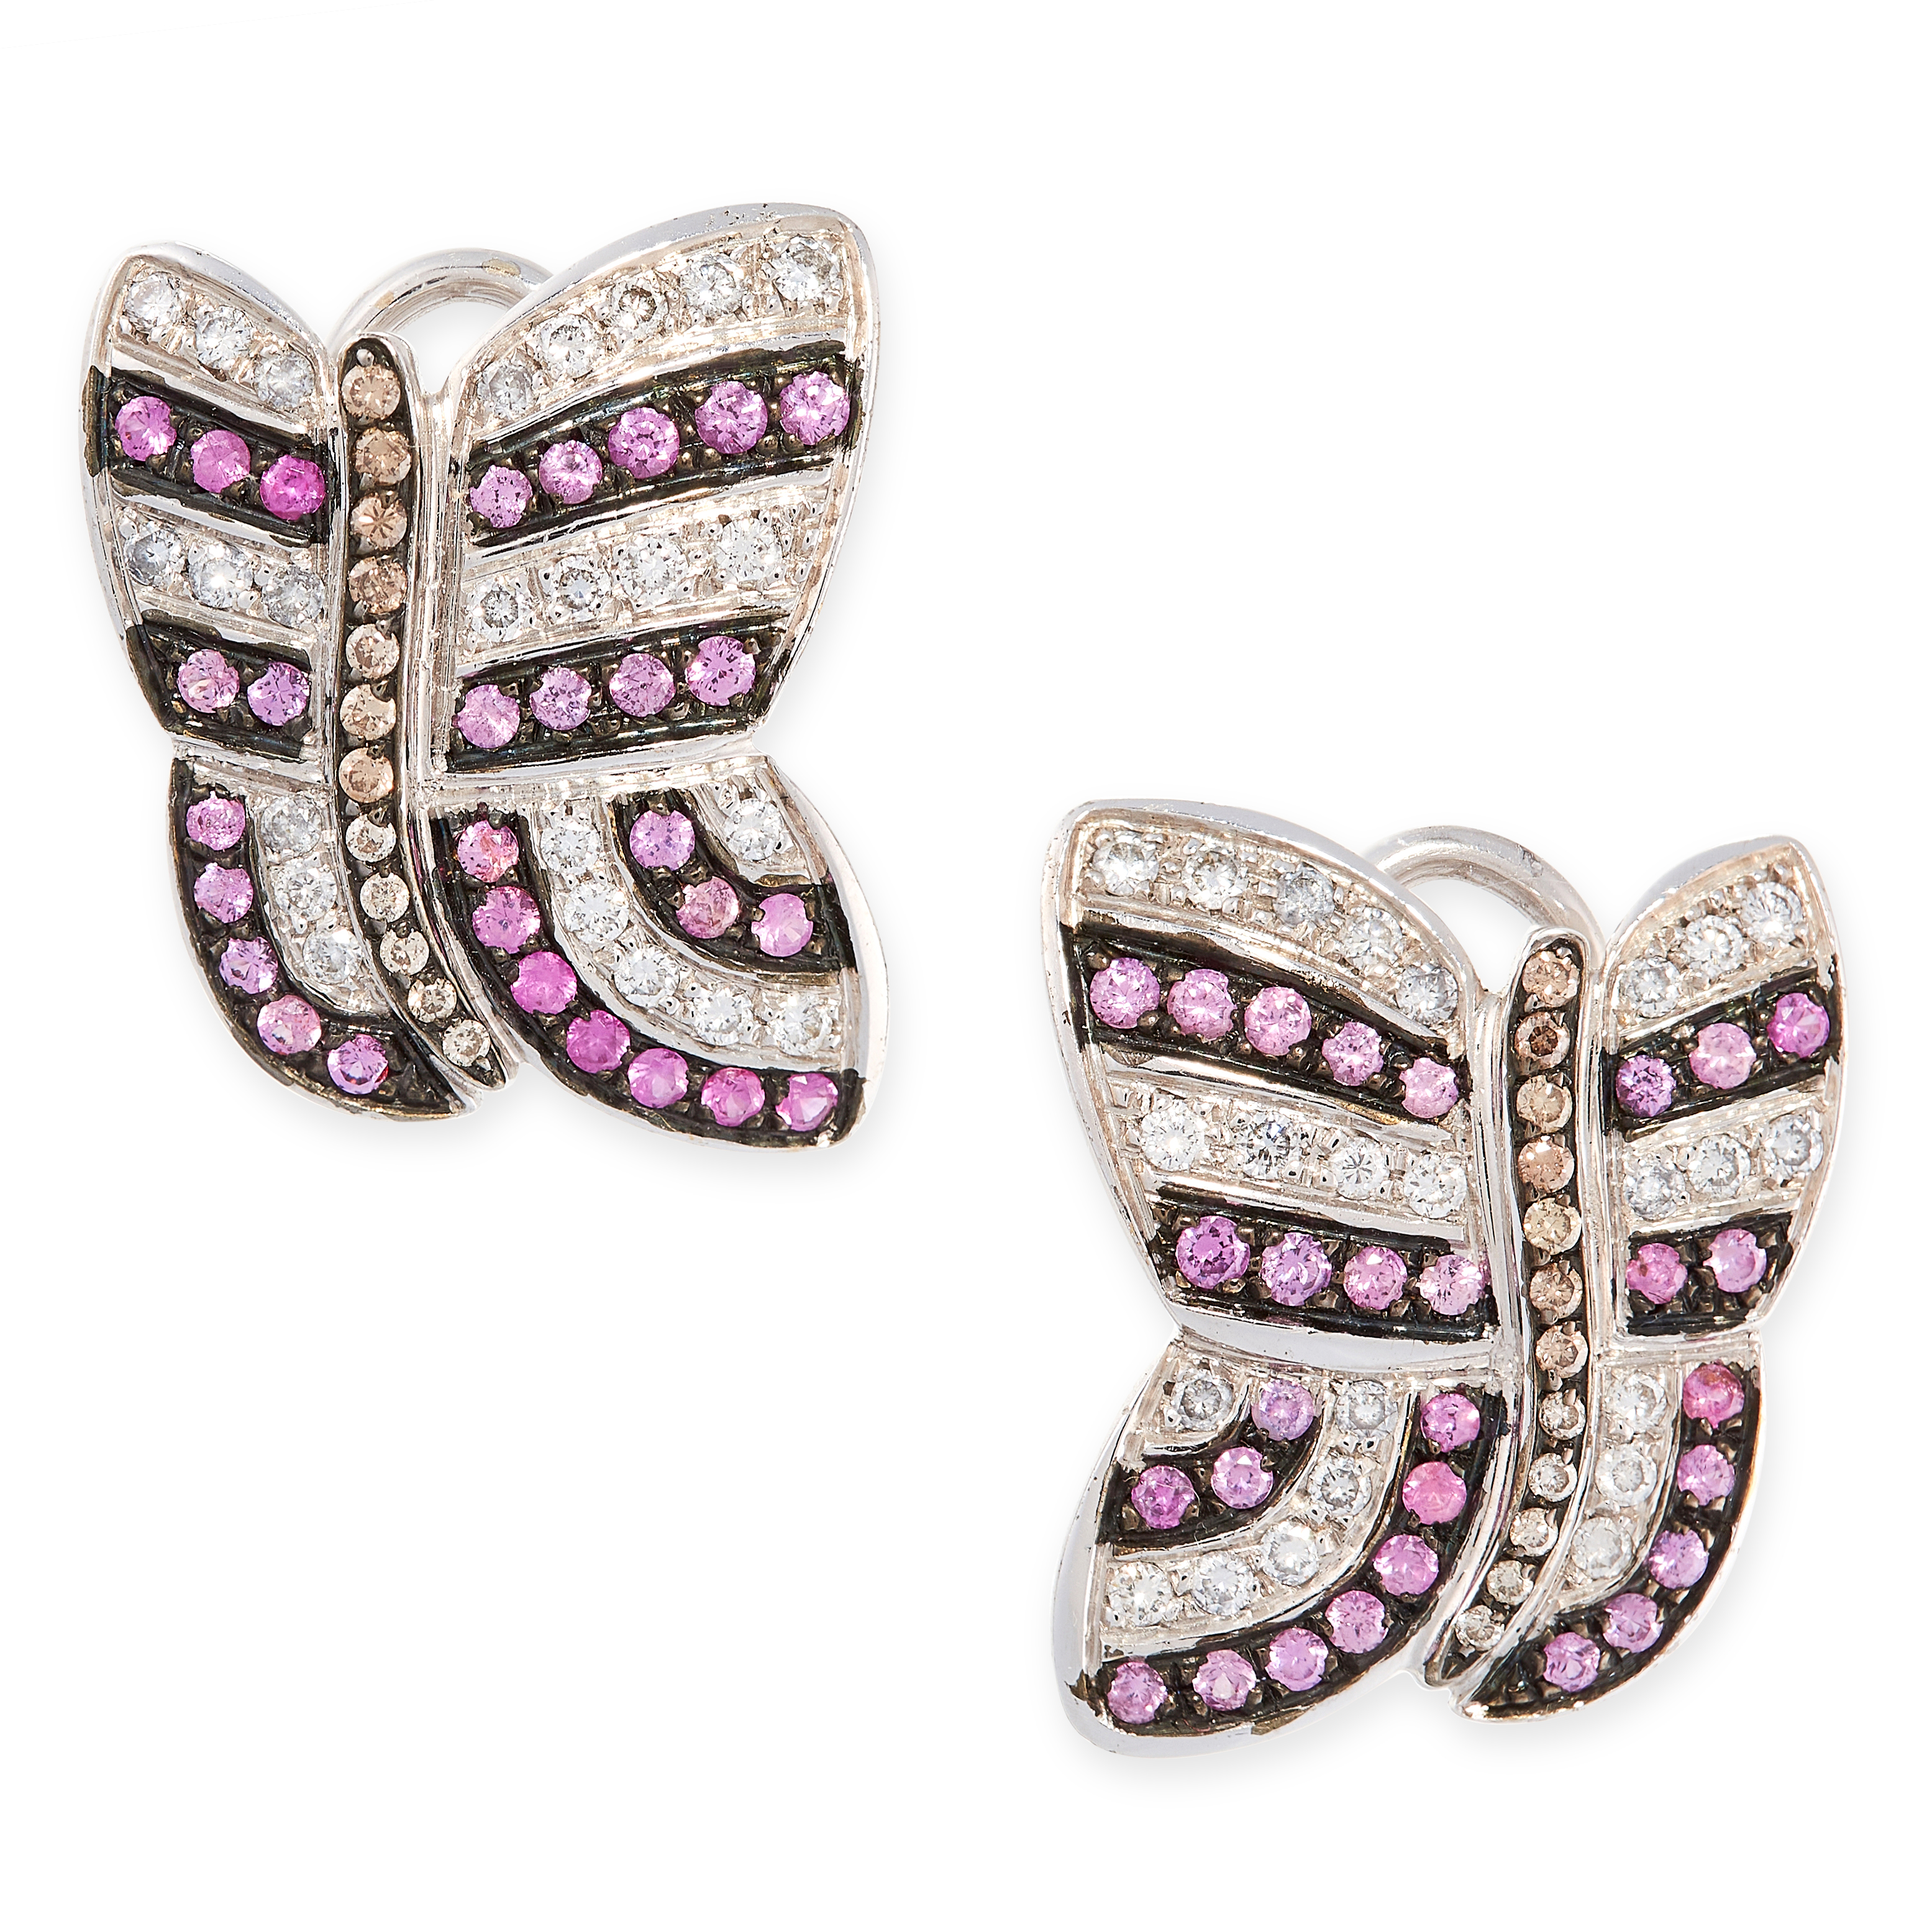 A PAIR OF RUBY AND DIAMOND CLIP EARRINGS, GAVELLO in 18ct white gold, each designed as a